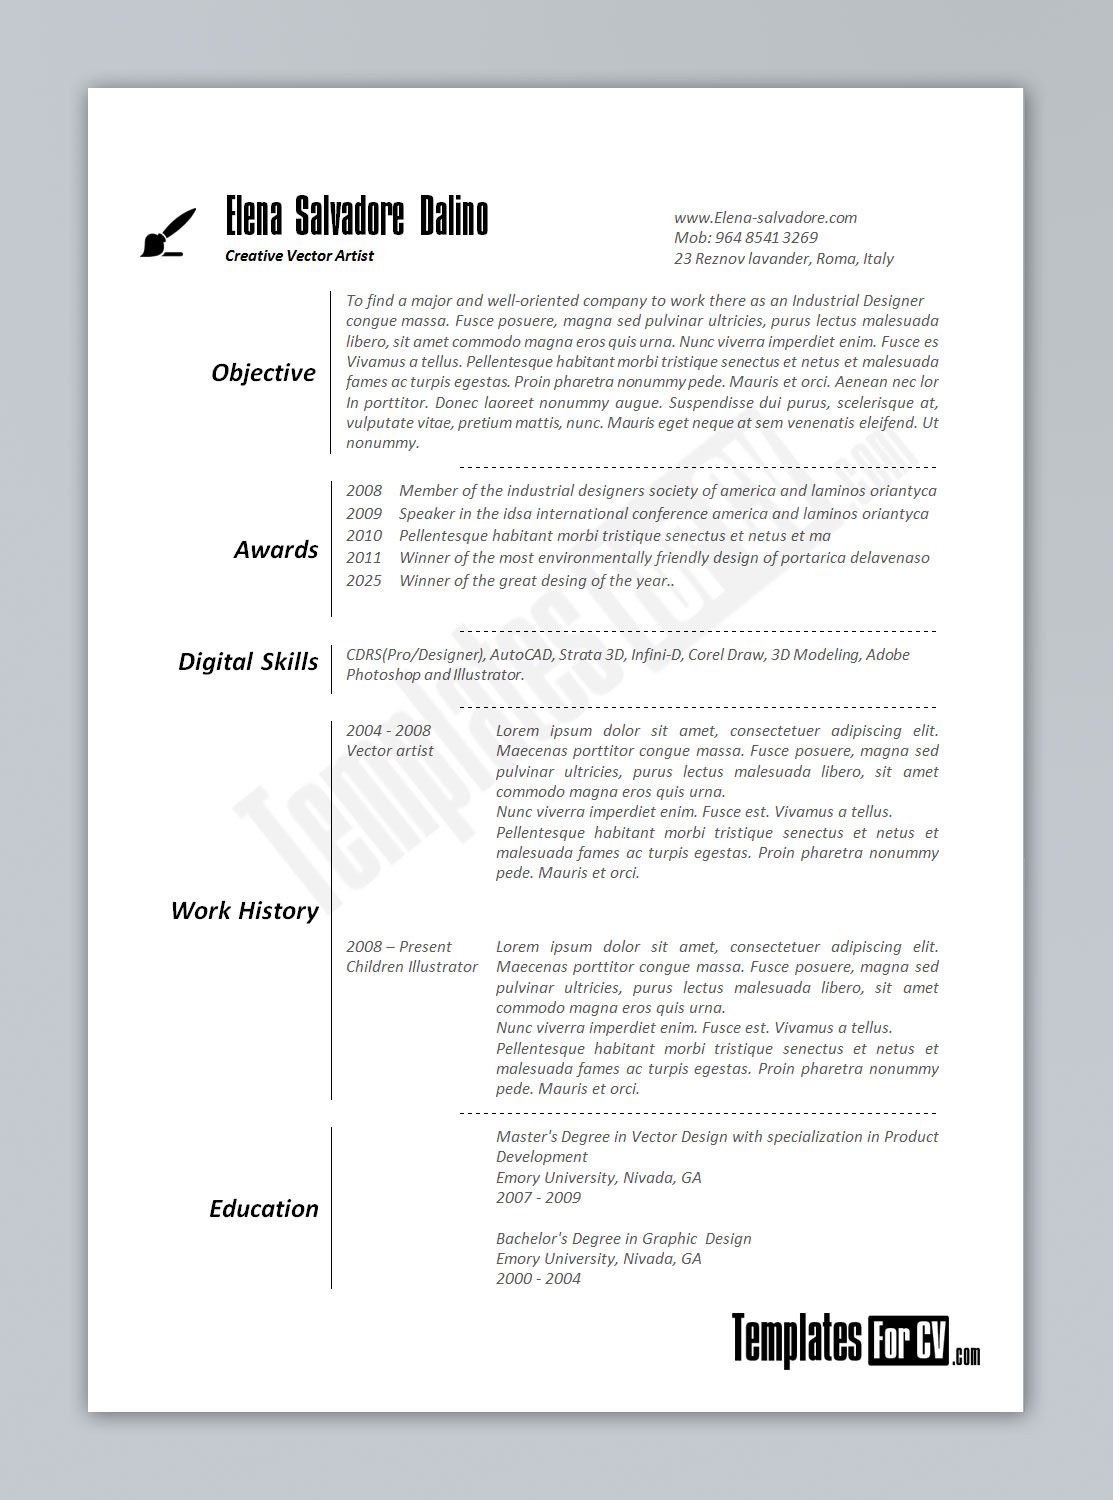 resume layout word resume builder resume layout word 2007 resumes and cover letters office word resume template resume word format